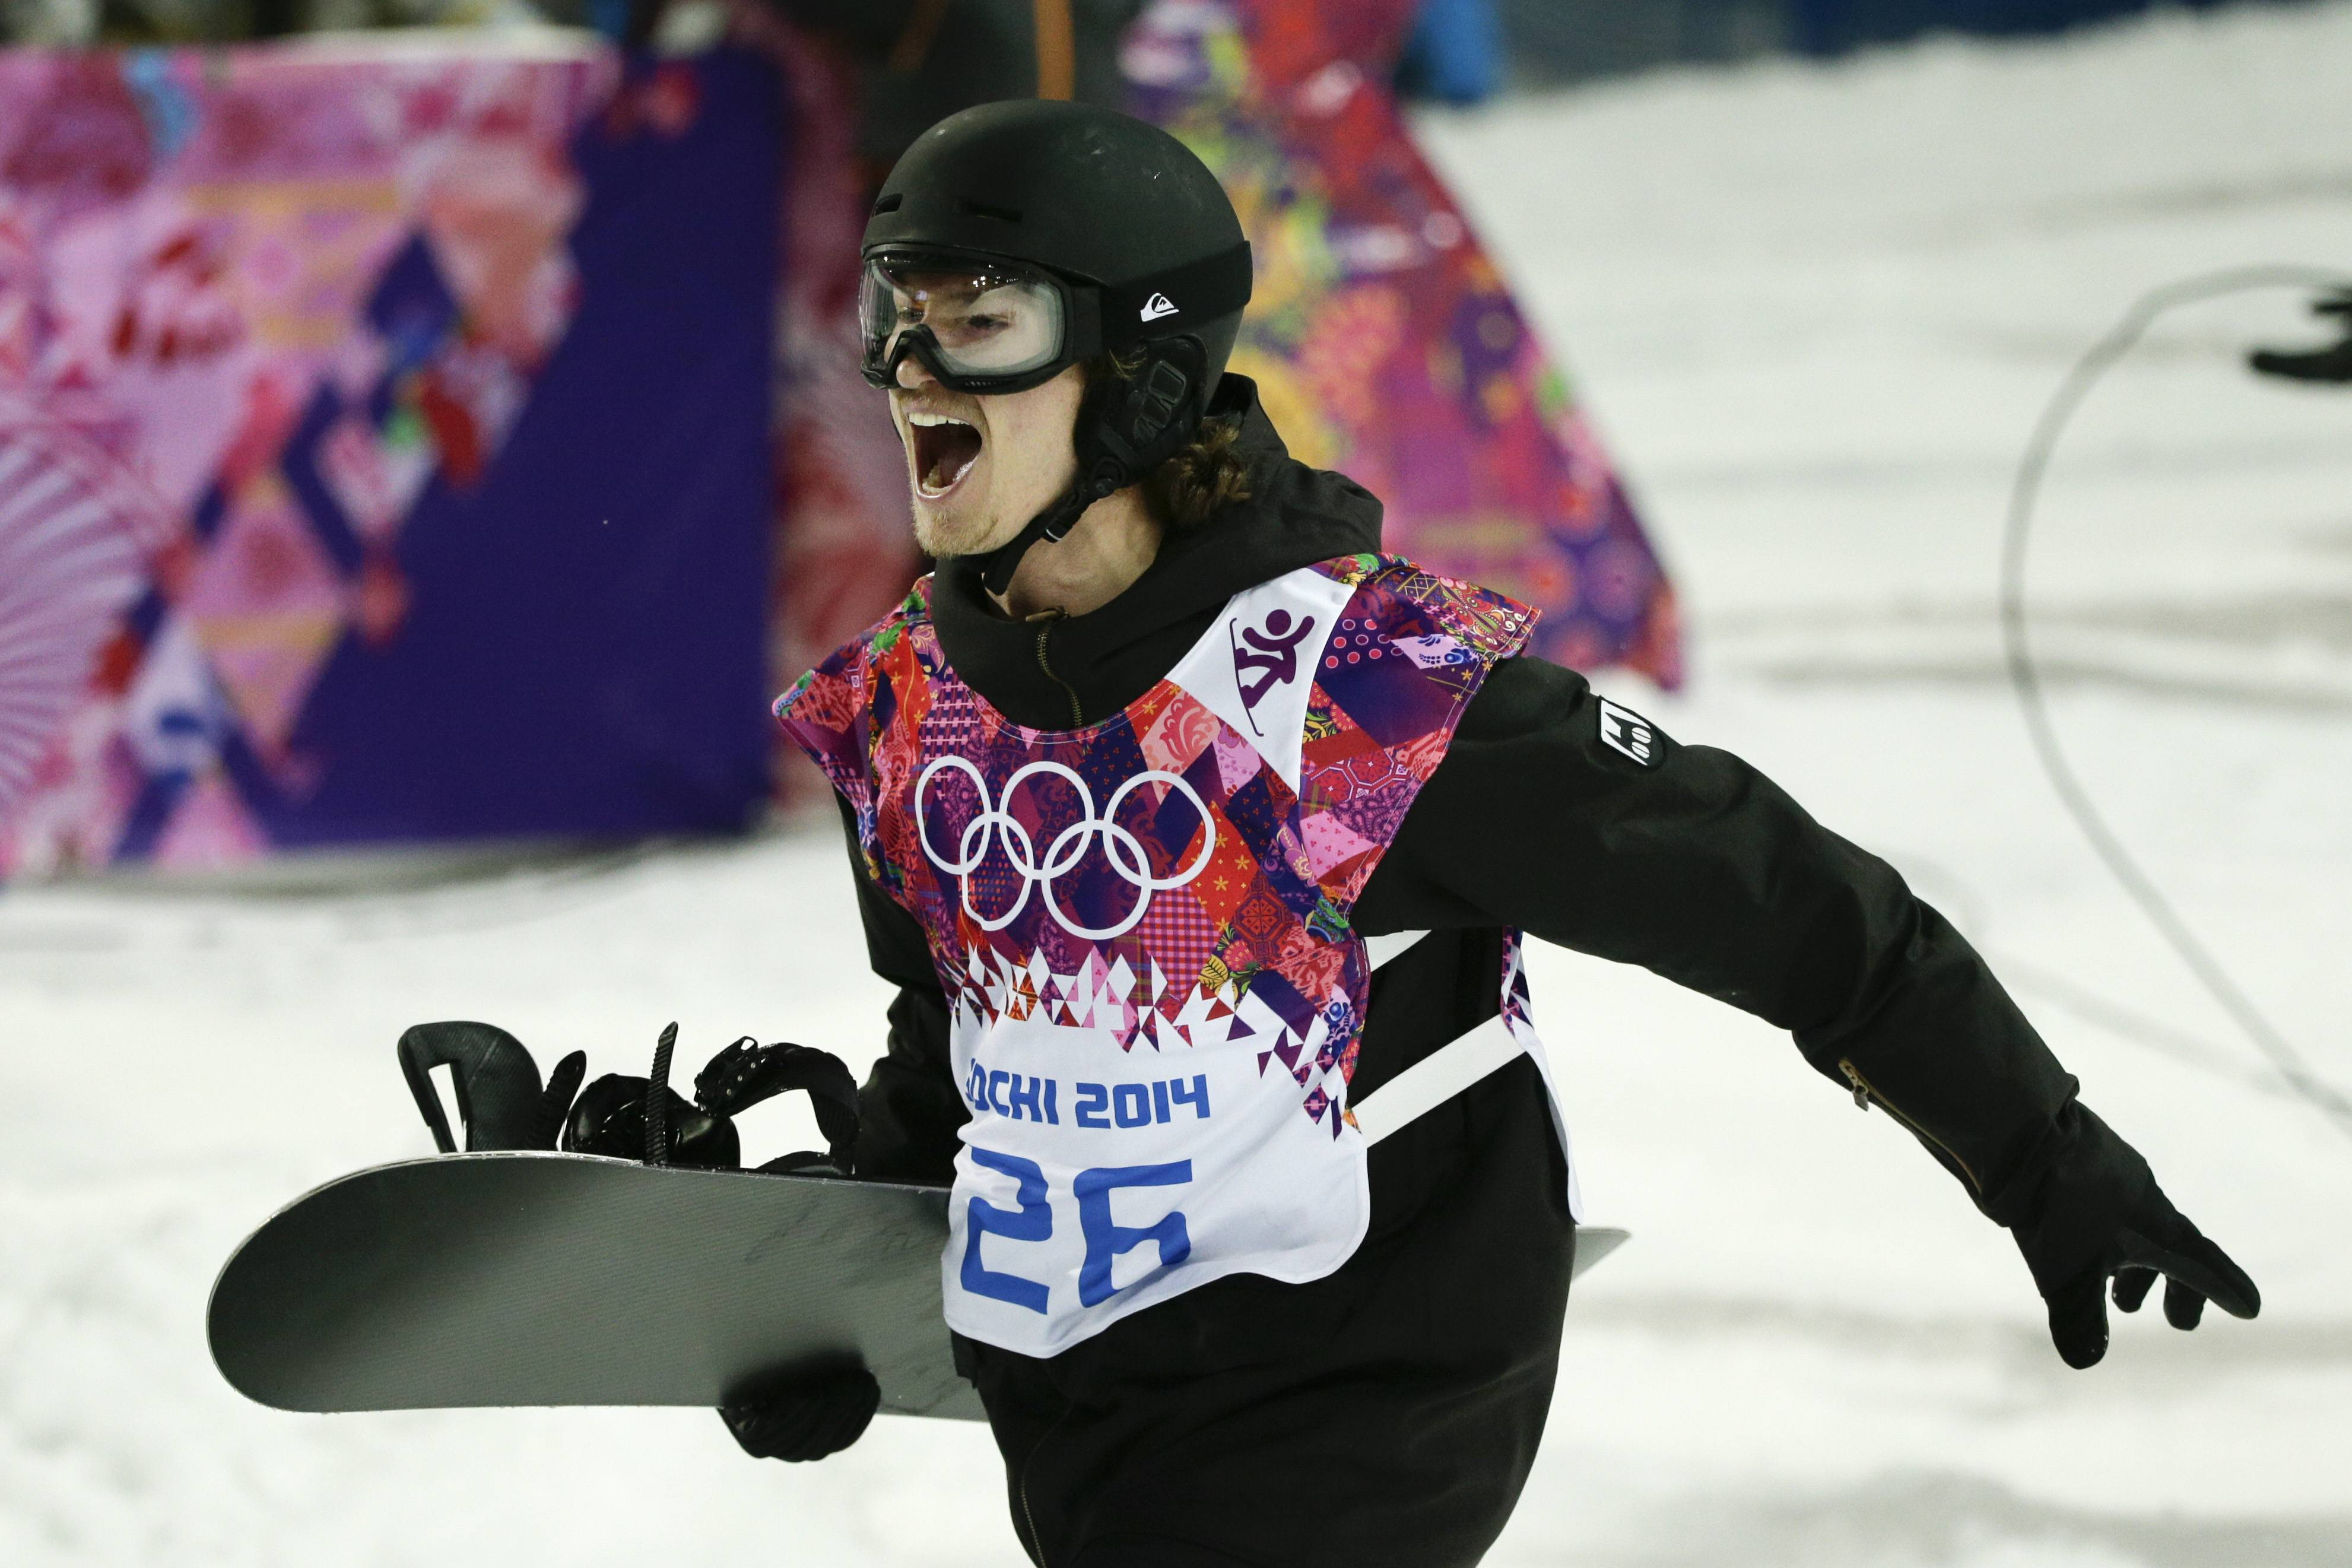 Switzerland's Iouri Podladtchikov reacts after competing in the men's snowboard halfpipe final.